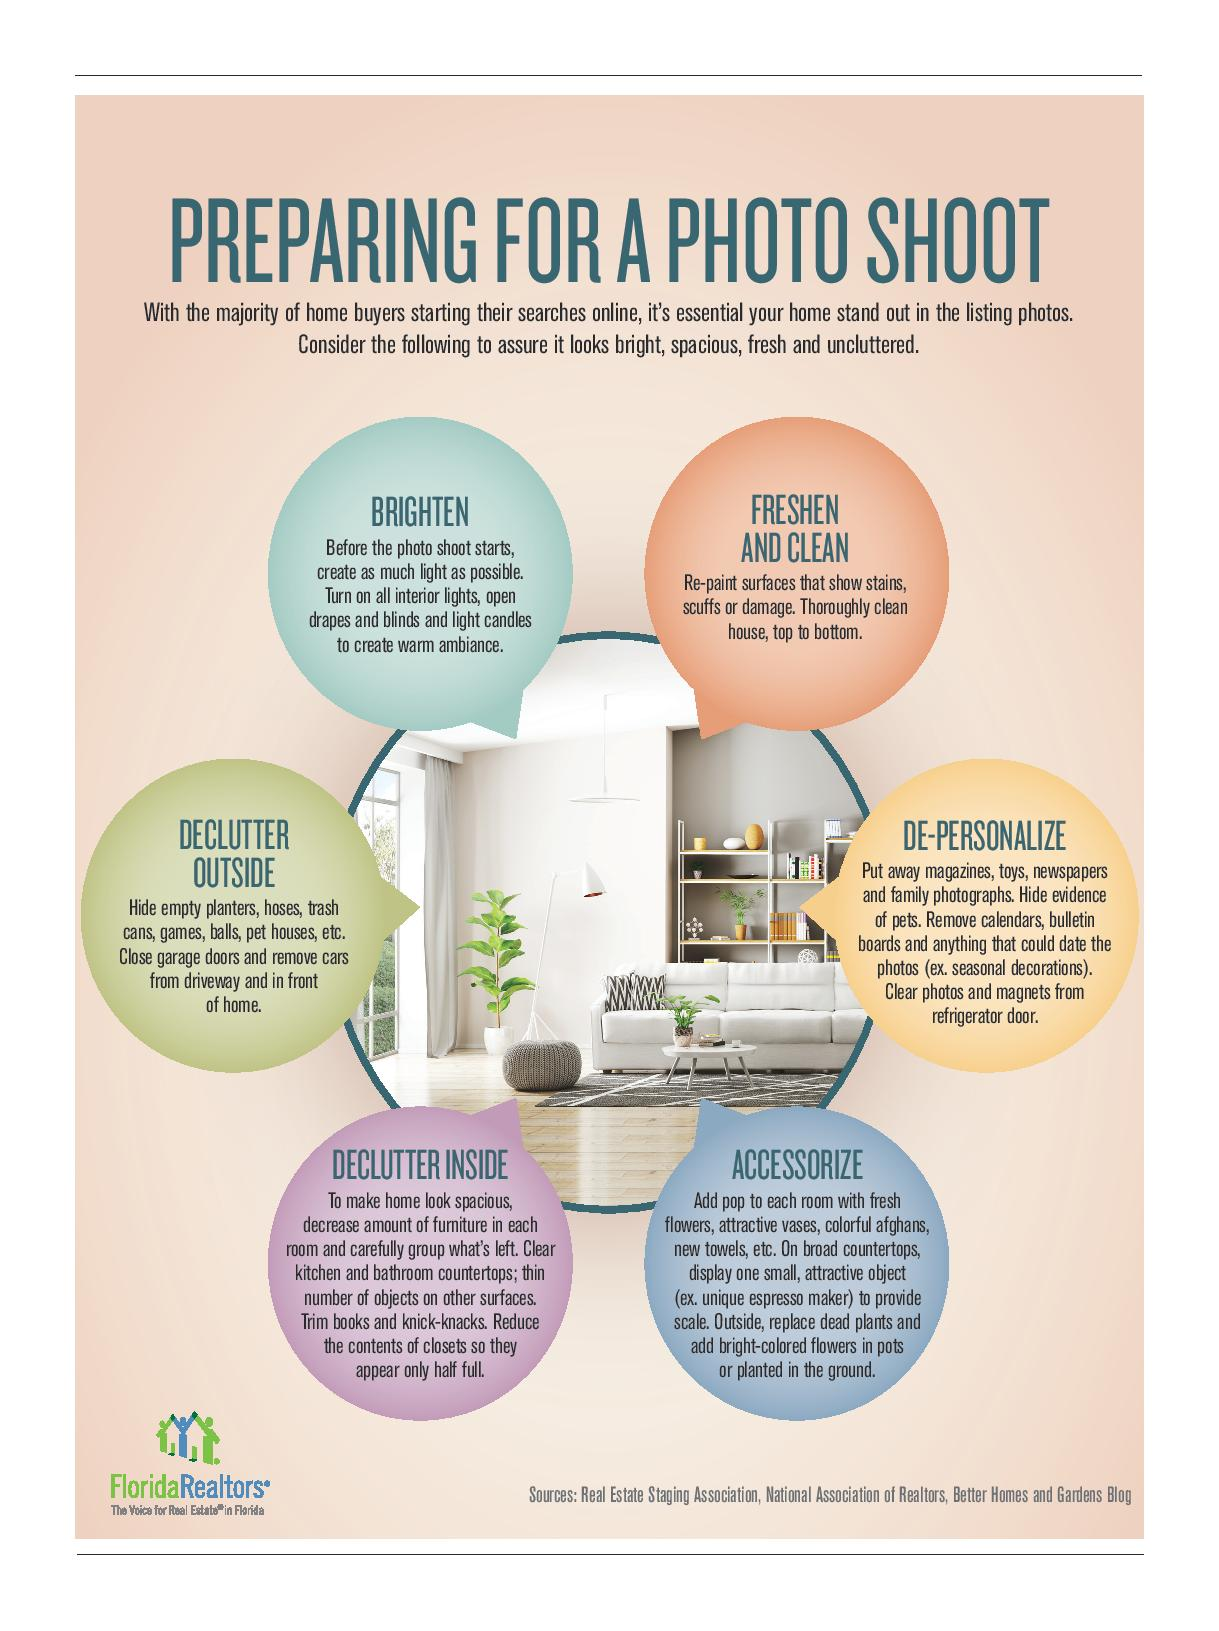 Tips to Prepare A Home For A Photo Shoot